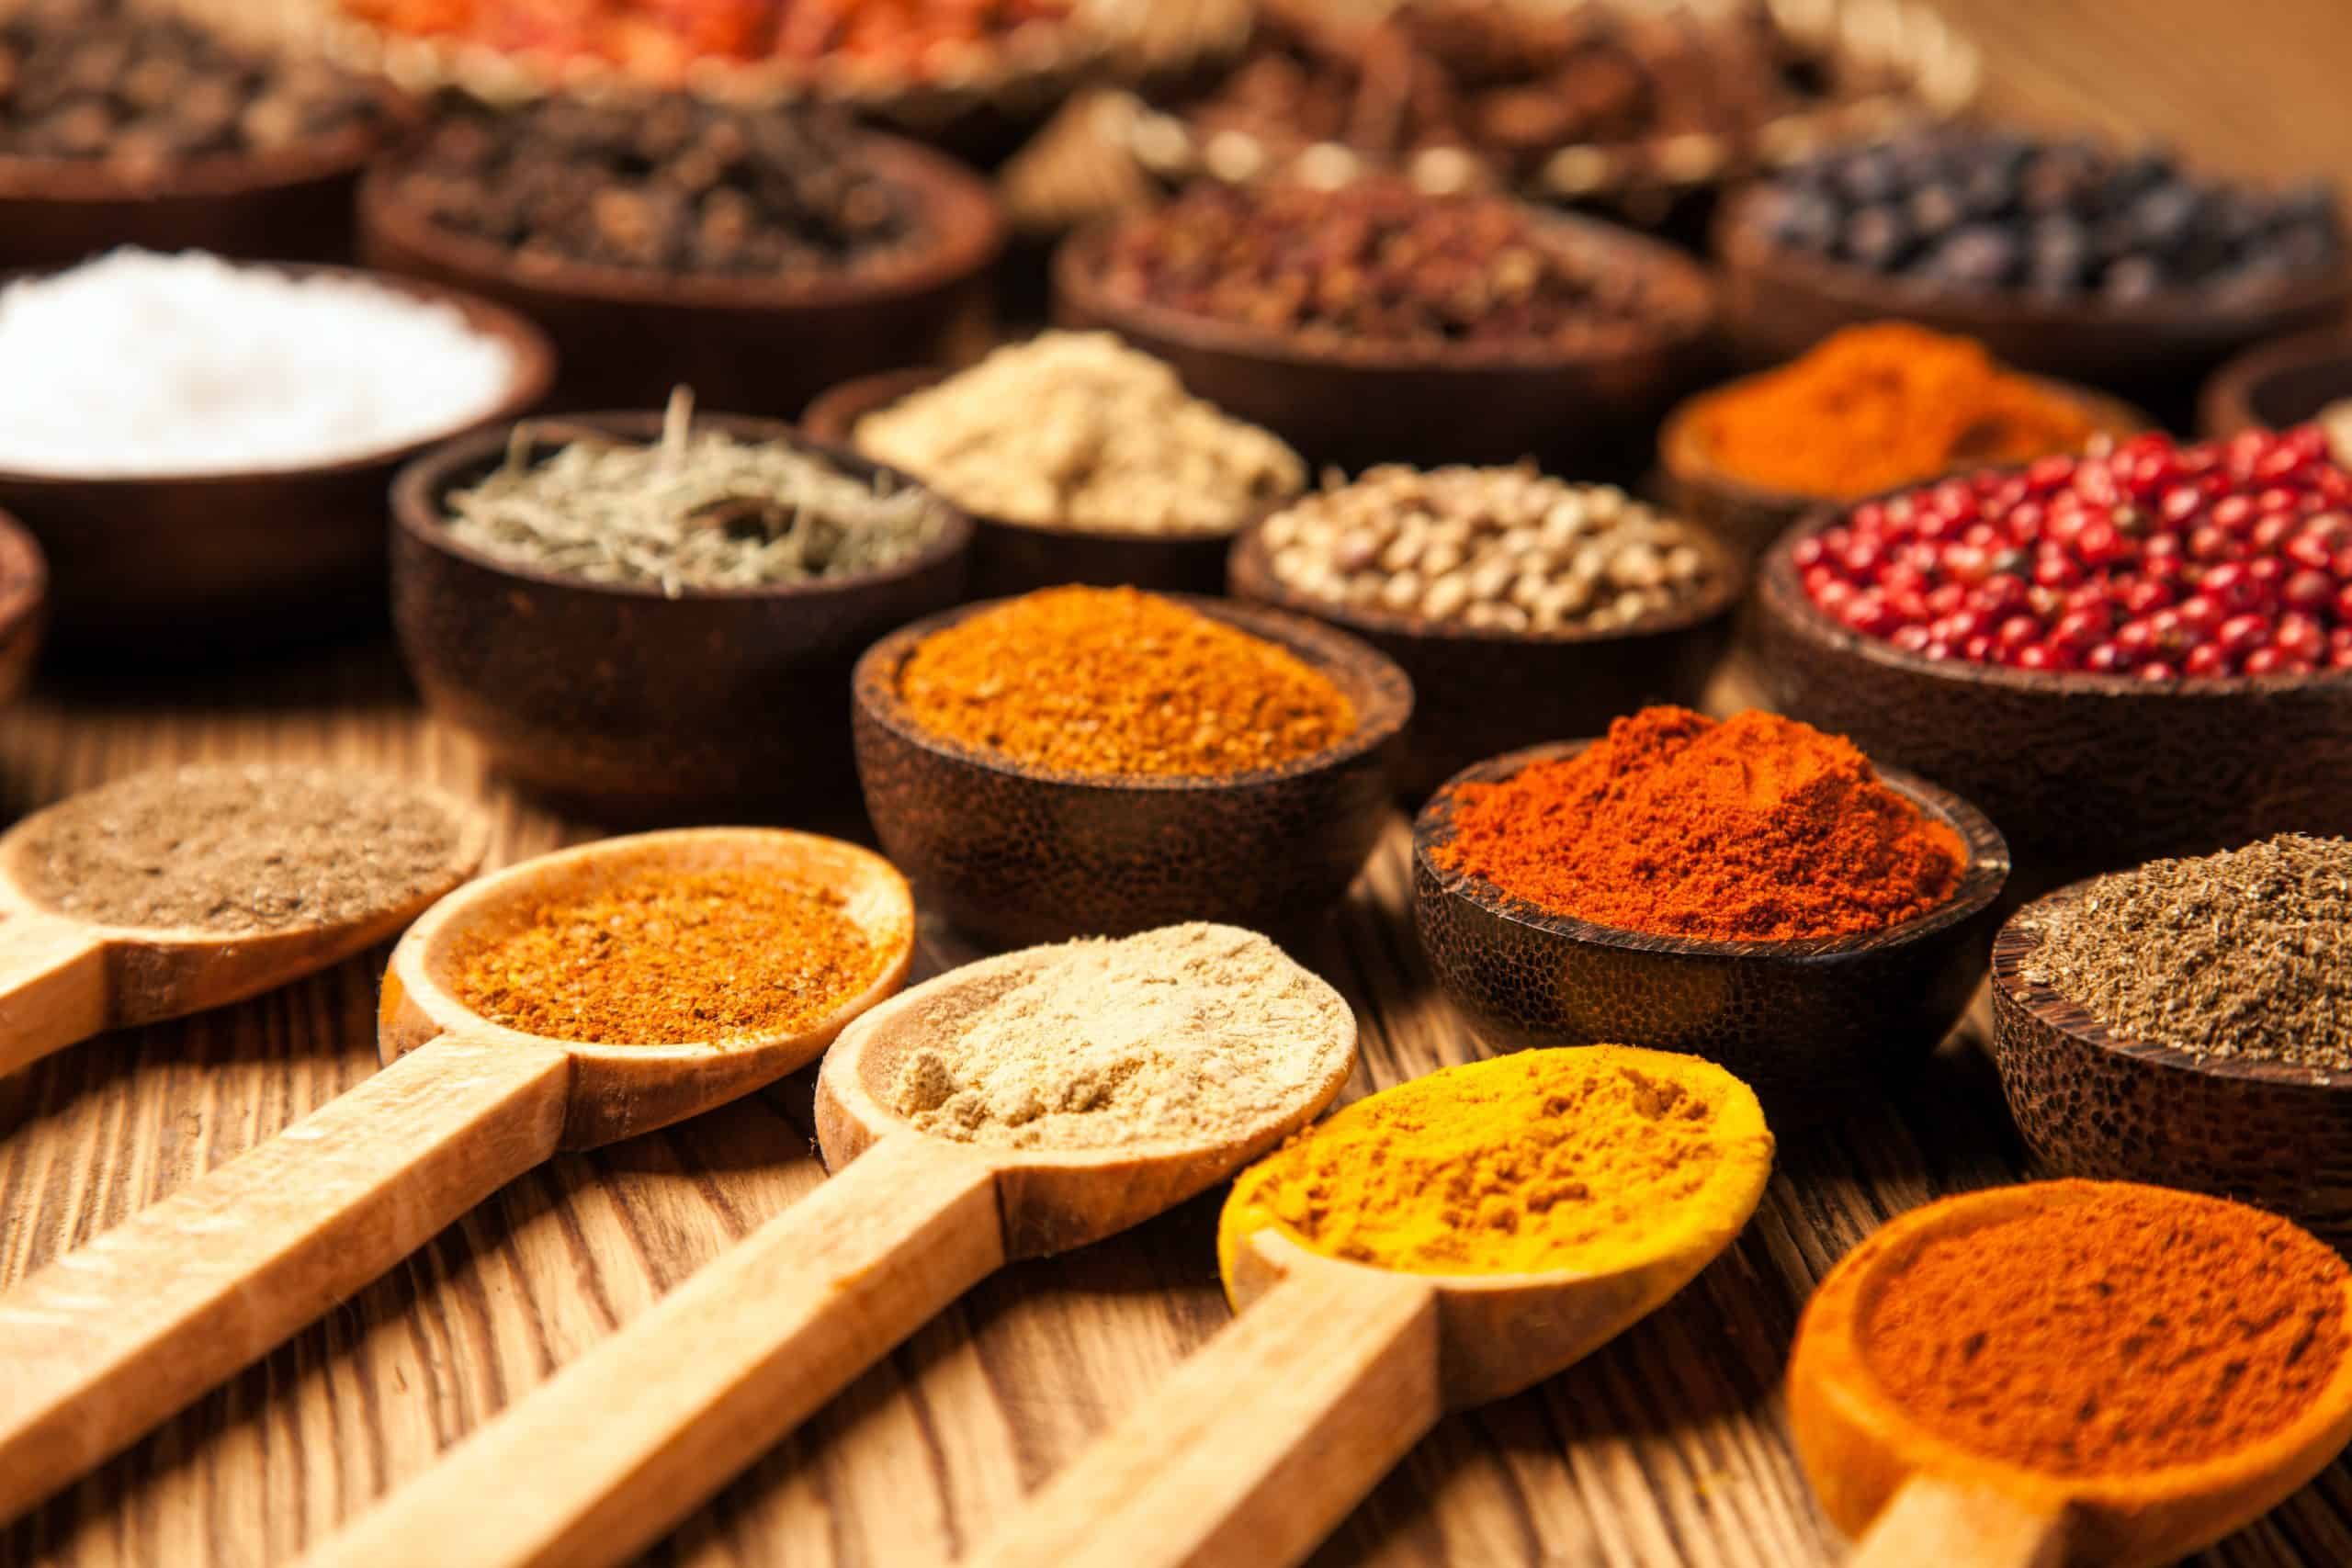 Spices and herbs in wooden bowls.